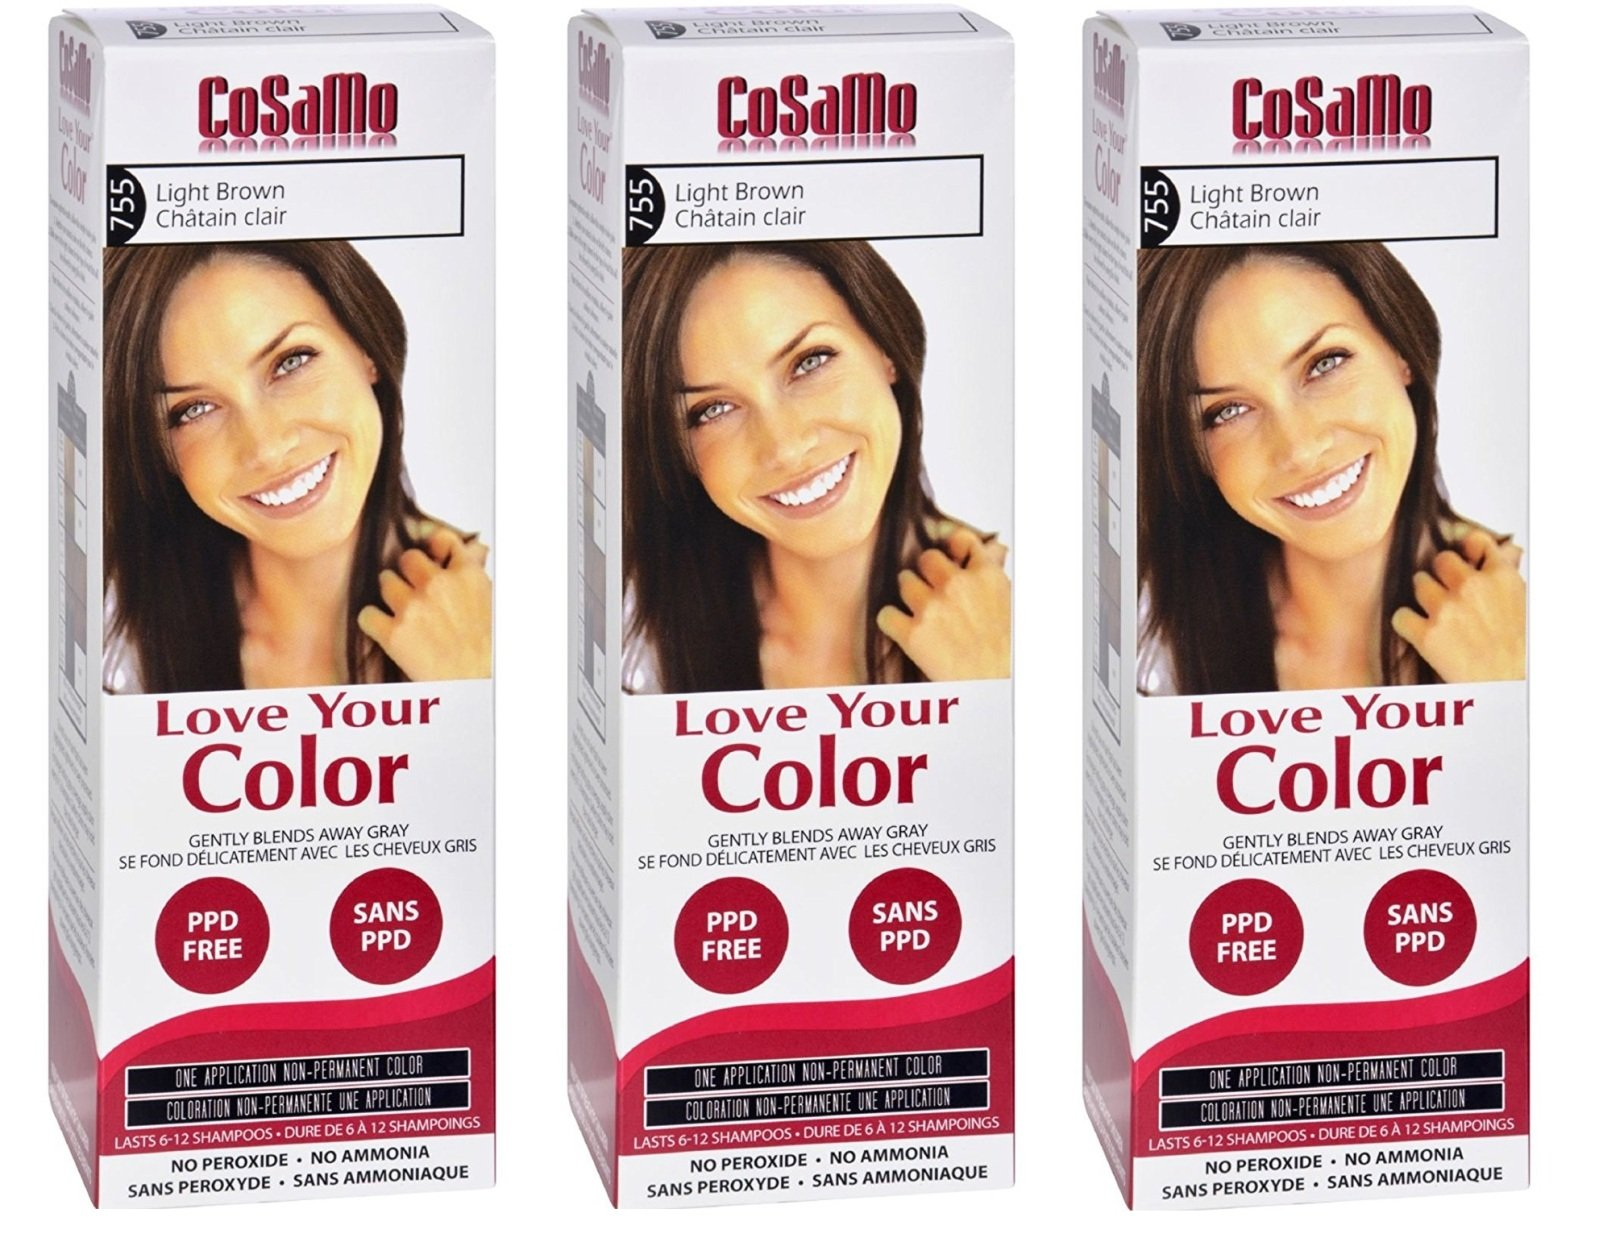 CoSaMo - Love Your Color Non-Permanent Hair Color 755 Light Brown - 3 Oz (Pack of 3) + FREE Travel Toothbrush, Color May Vary